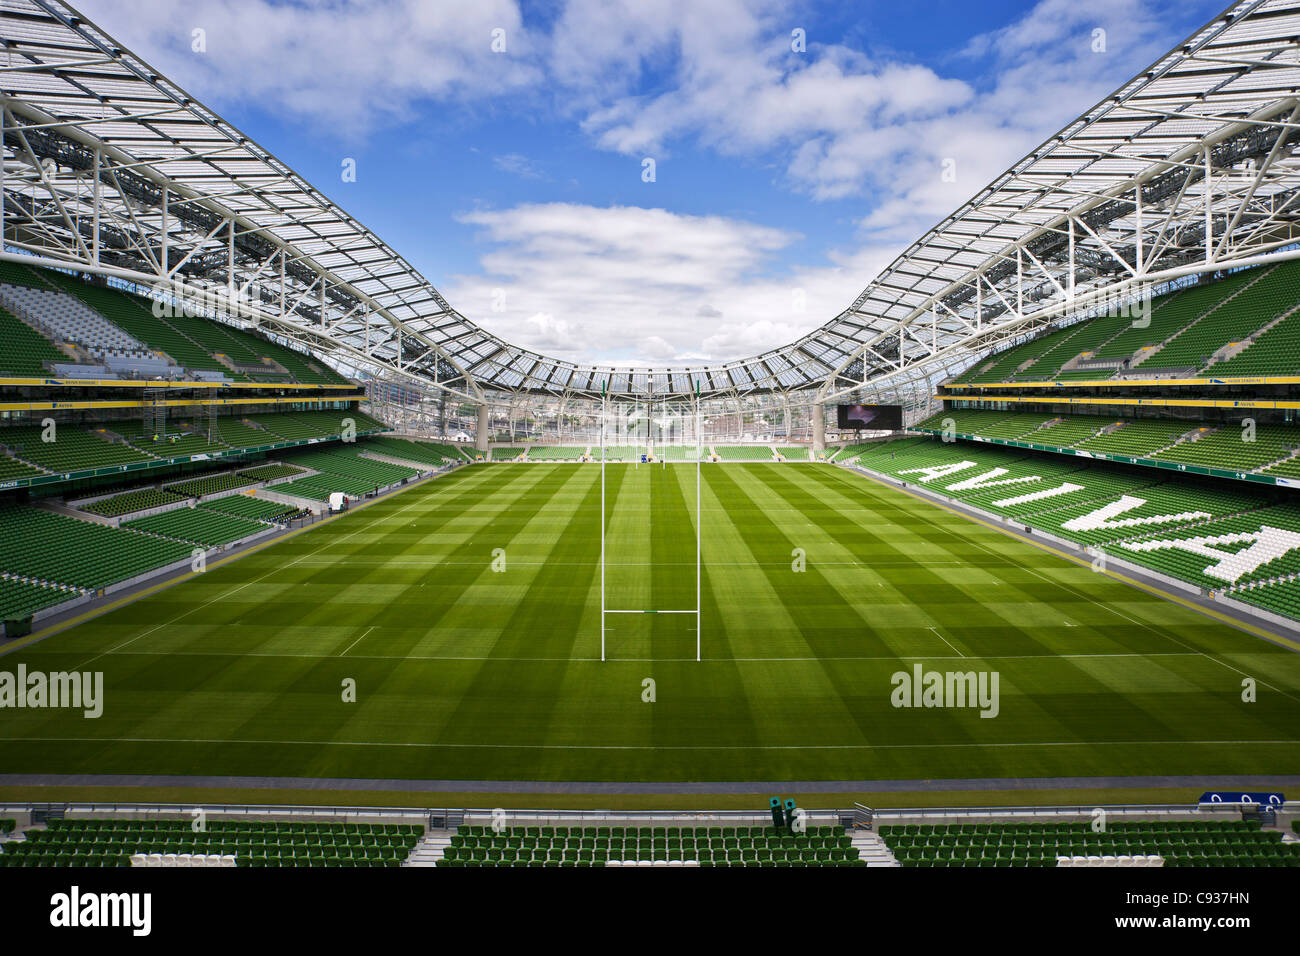 Ireland, Dublin, Lansdowne Road Football stadium, interior panoramic view looking from the south end of the stadium. - Stock Image